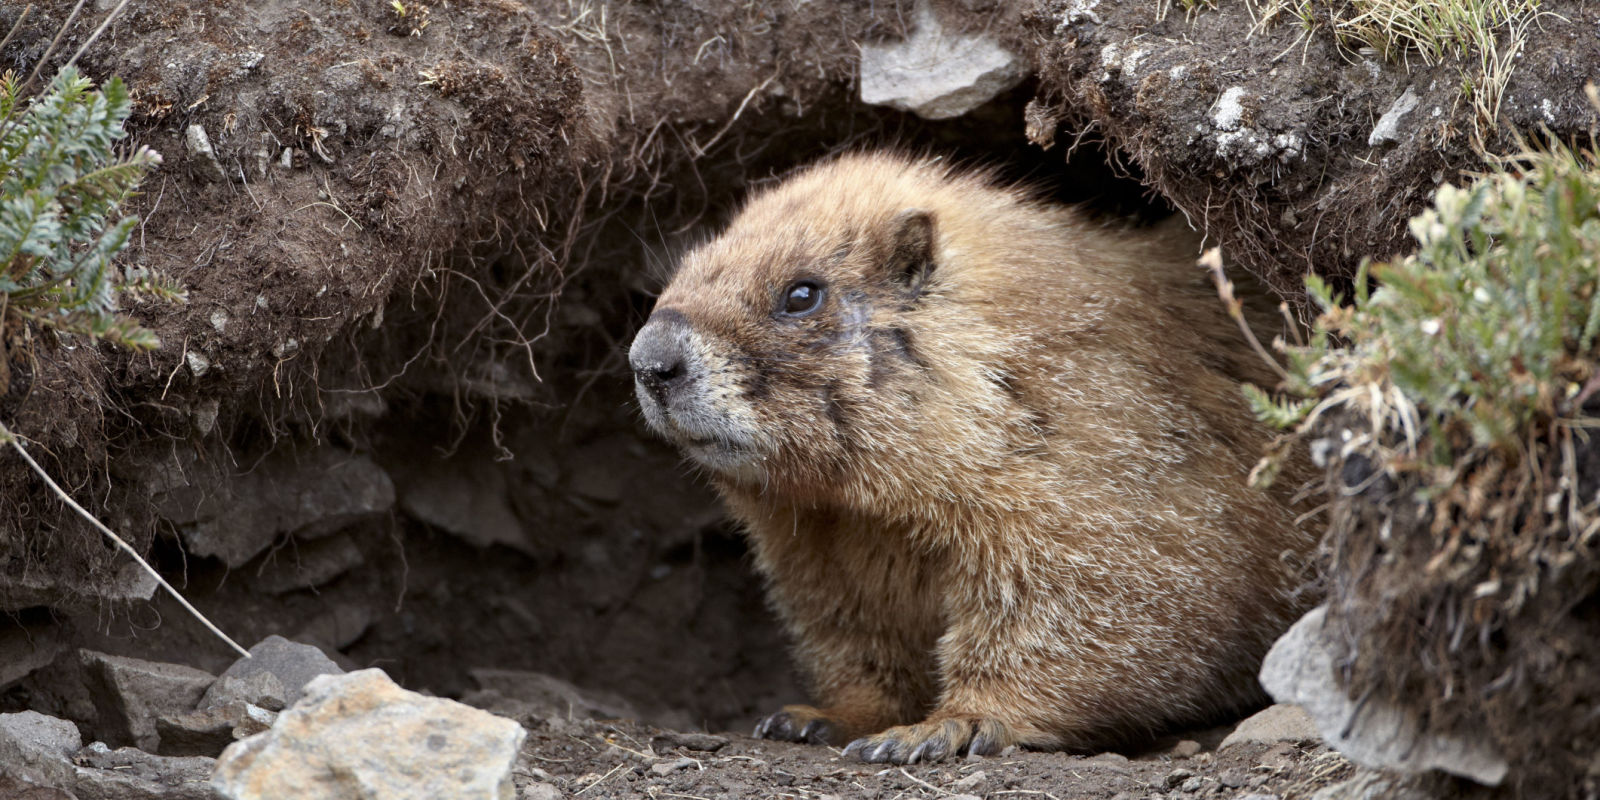 8 Things You Didn't Know About Groundhog Day